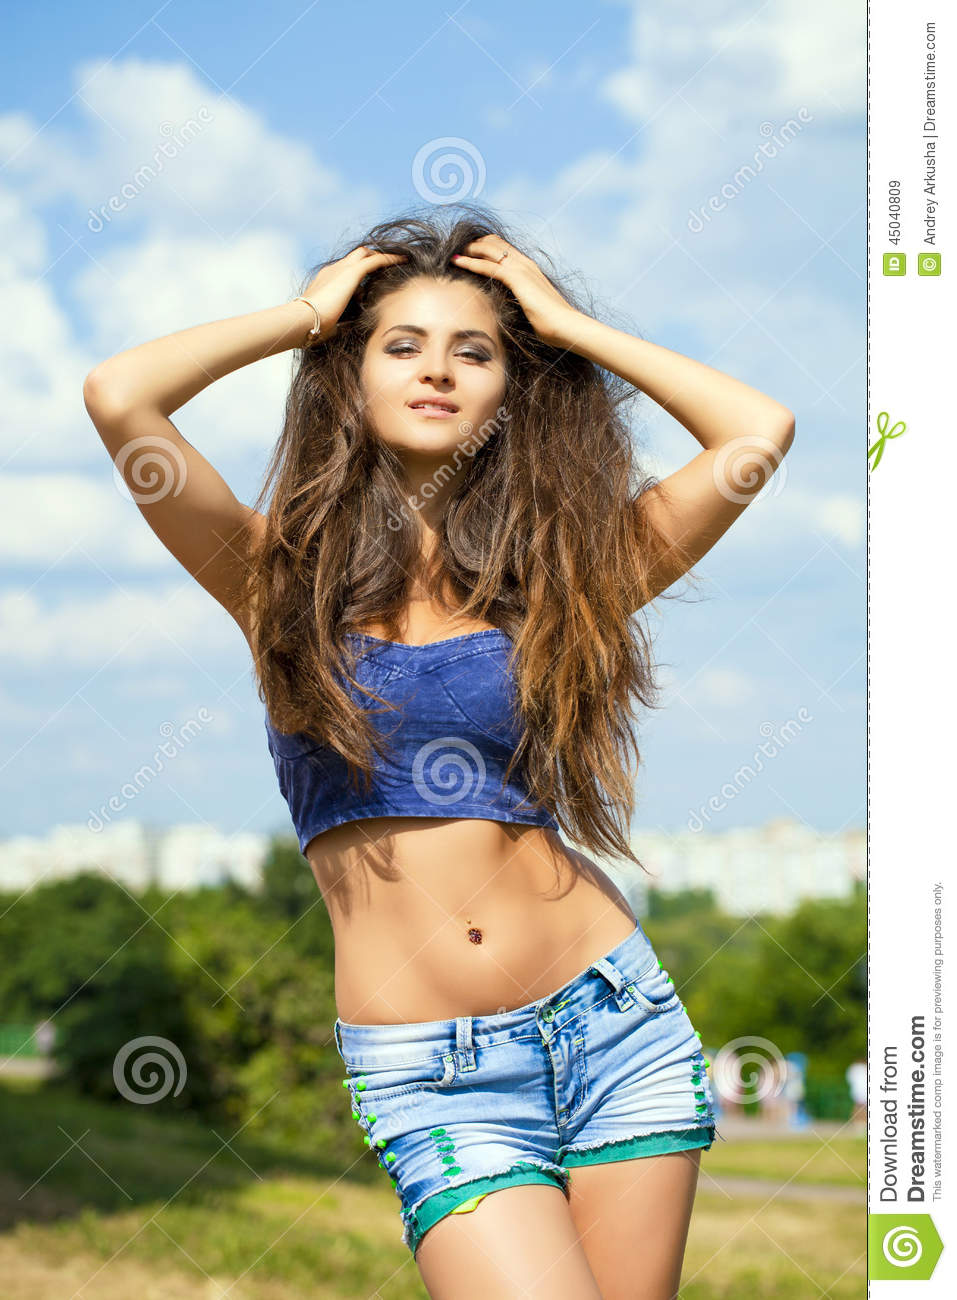 Download women in jeans stock photos. Affordable and search from millions of royalty free images, photos and vectors.